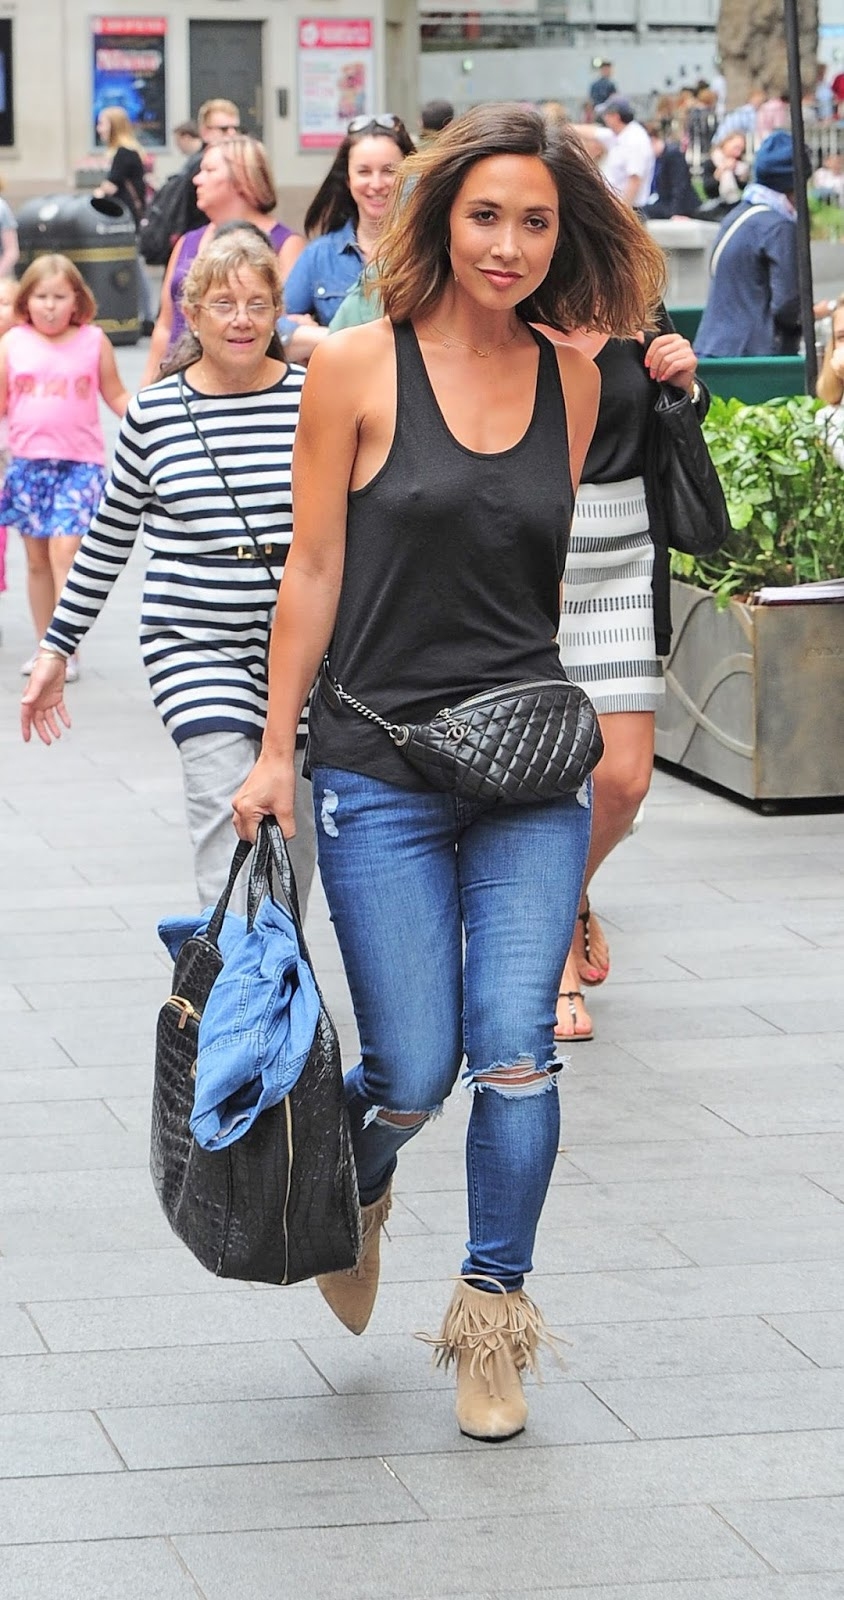 Myleene Klass goes braless in a low-cut vest top